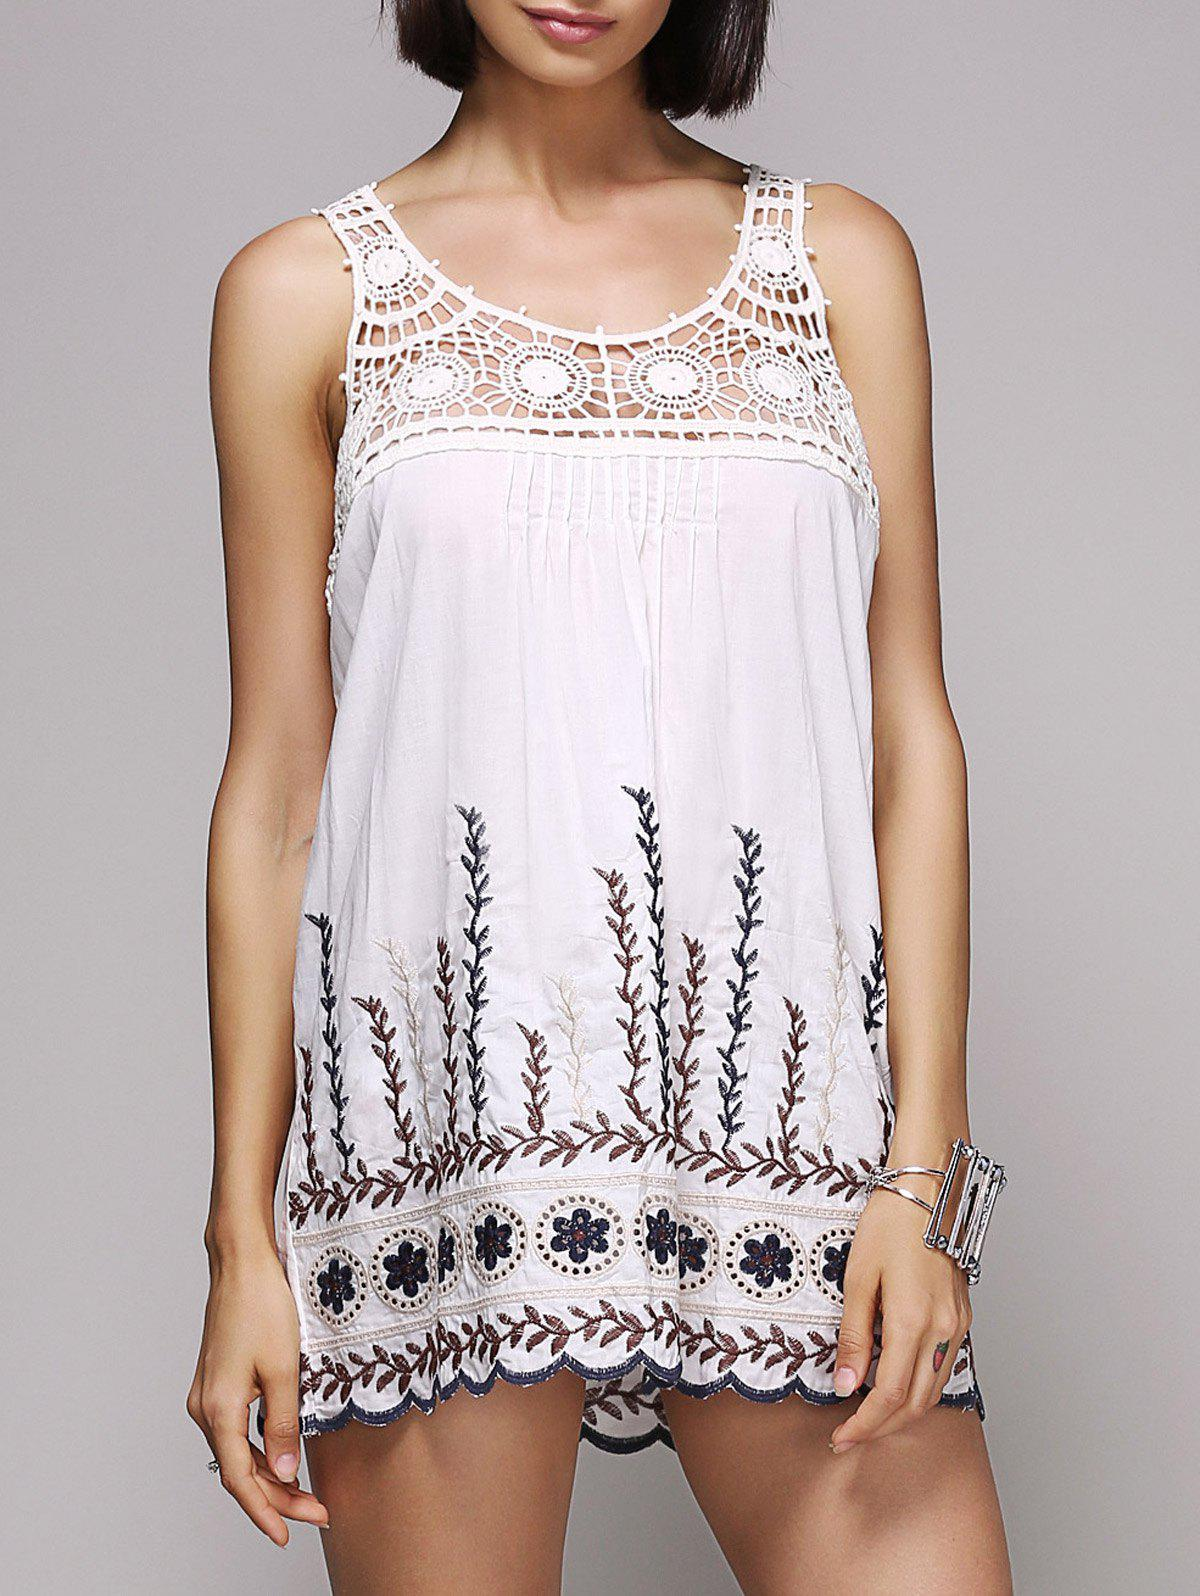 Stylish Women's Scoop Neck Embroidered Hollow Out Tank Top